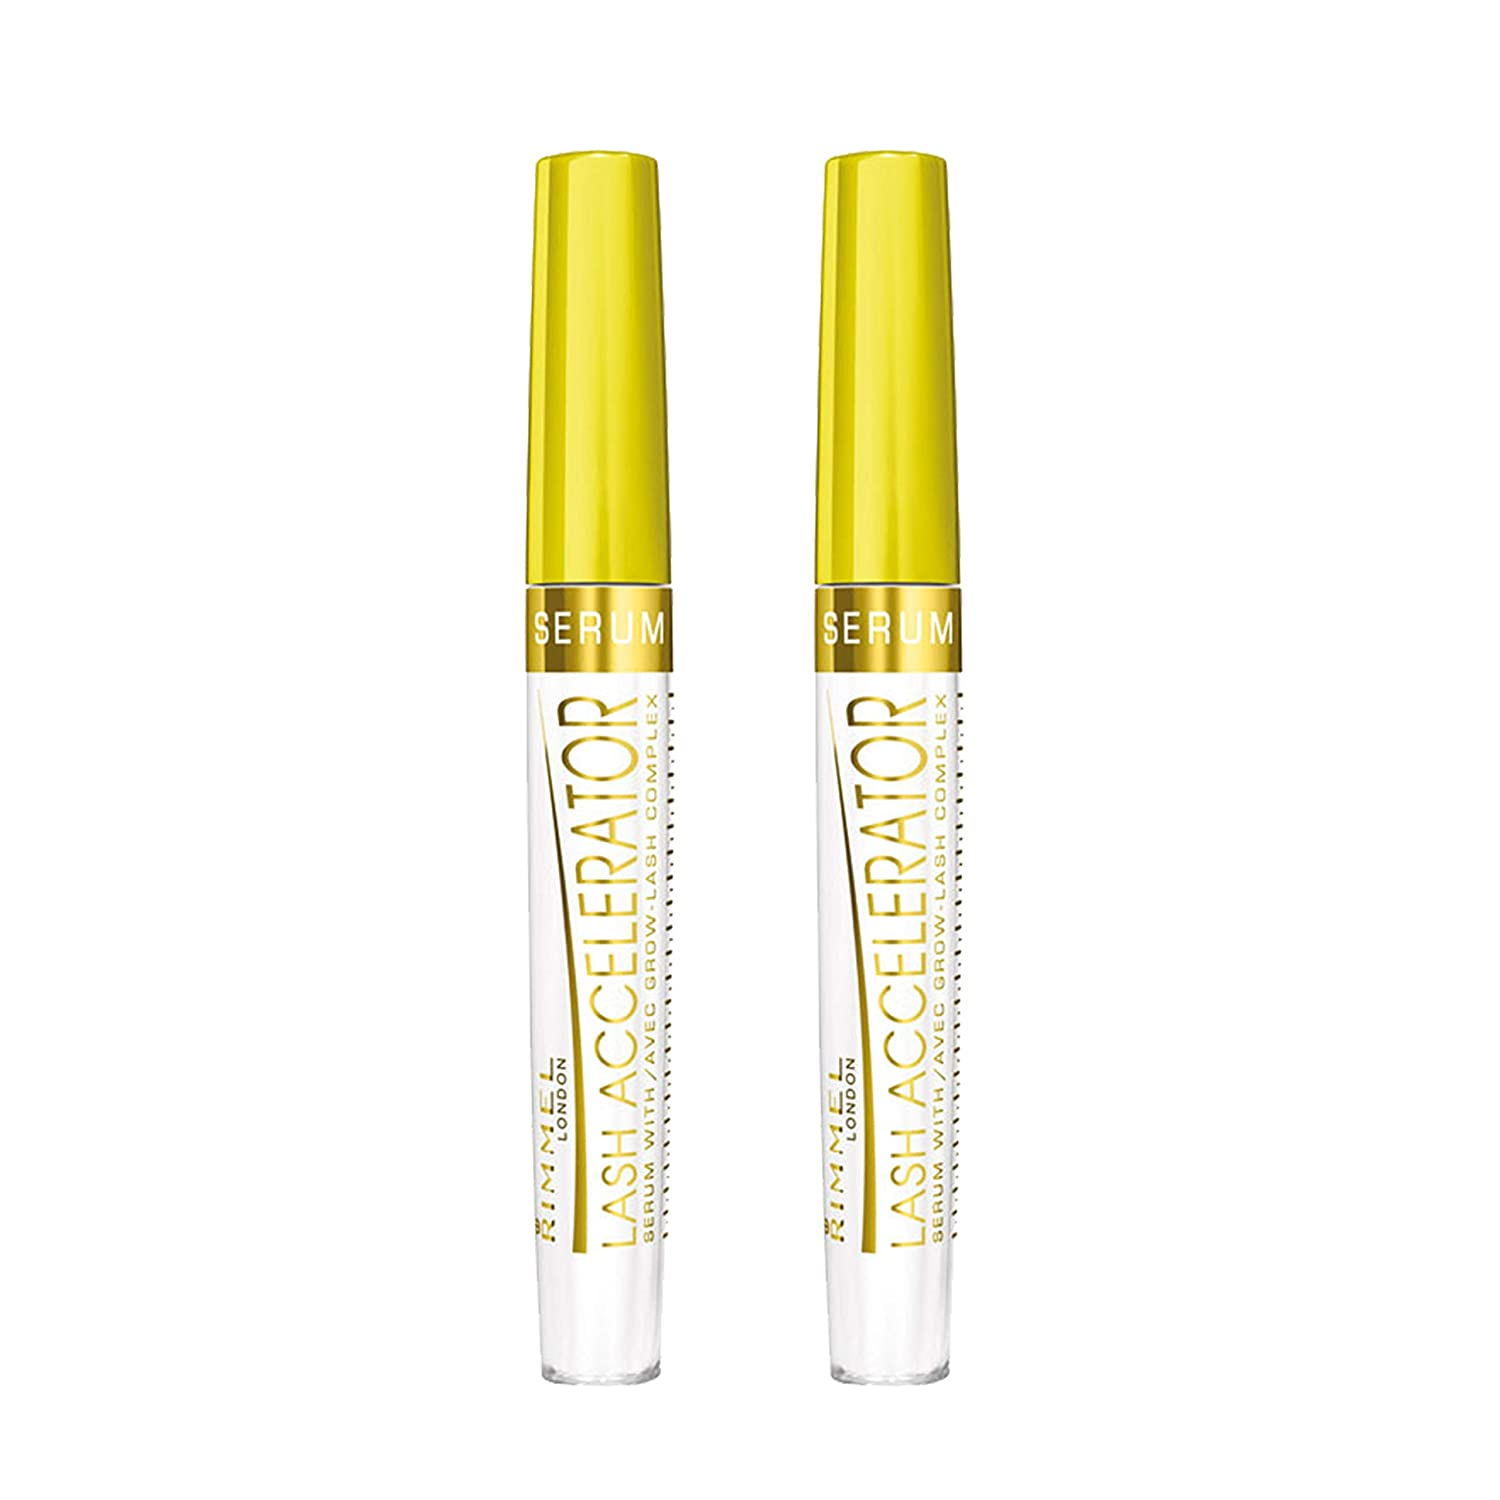 c90c1366a25 Amazon.com: Rimmel Lash Accelerator Serum, Clear, Nourishing Serum for the  Appearance of Full, Lush Eyelashes and Eyebrows, Enhance the Natural Growth  of ...